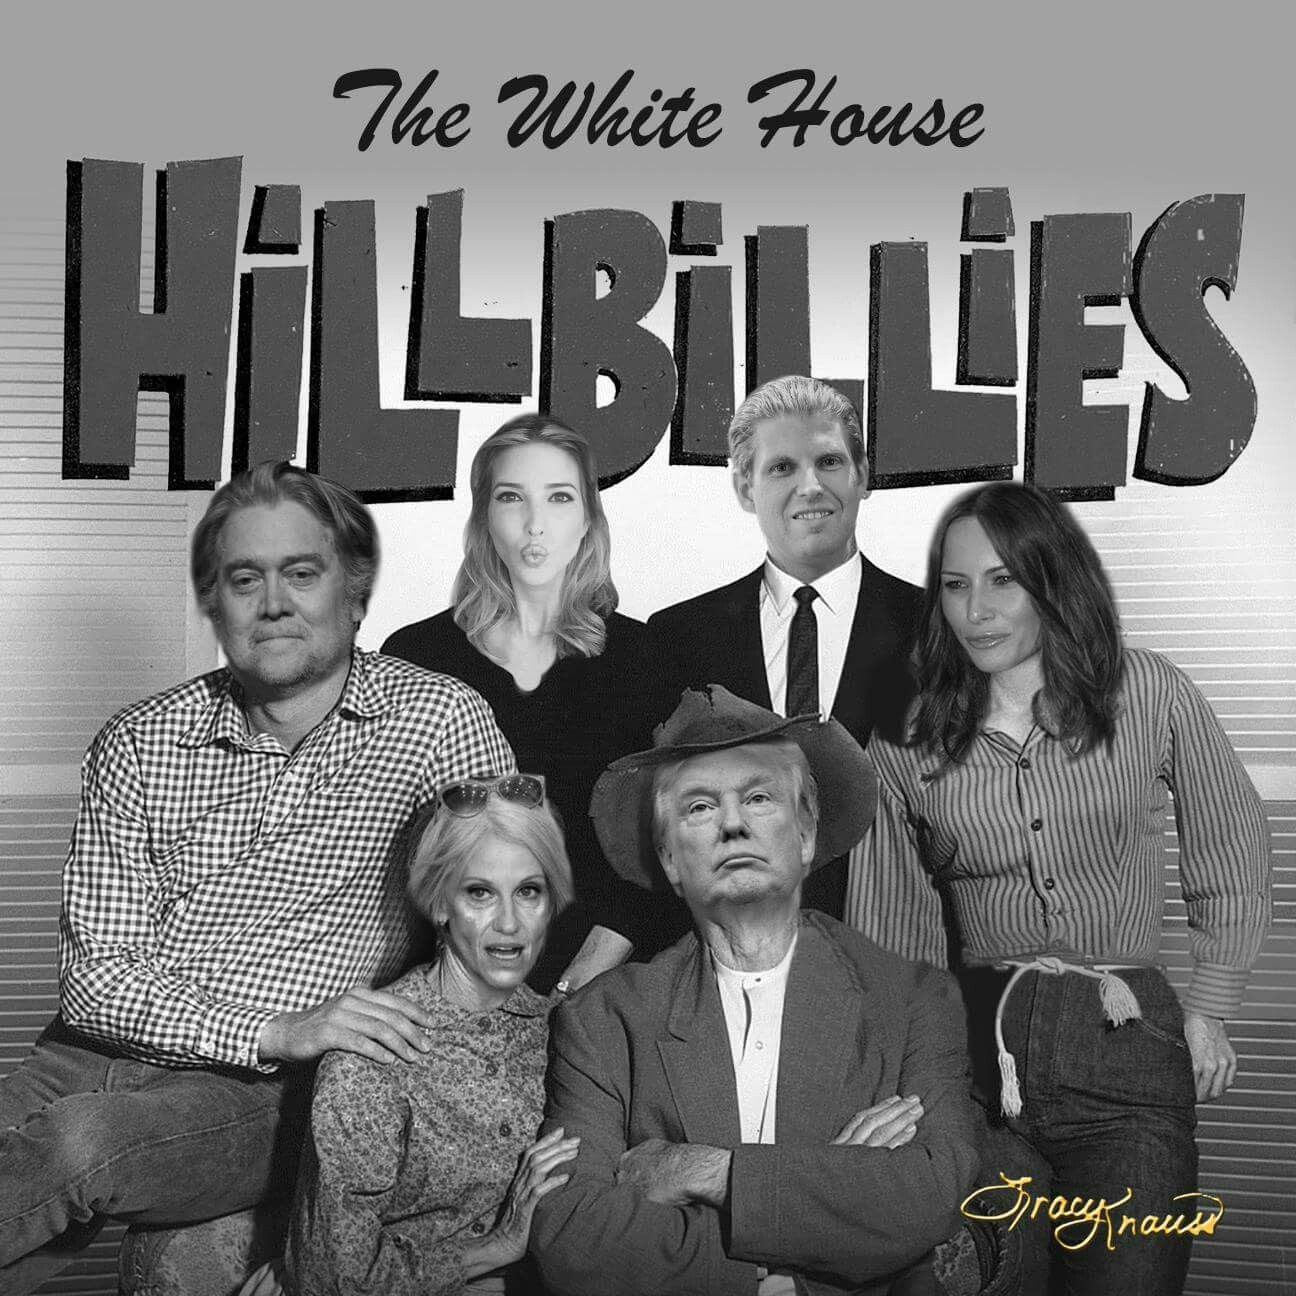 Image result for Trump family hillbillies